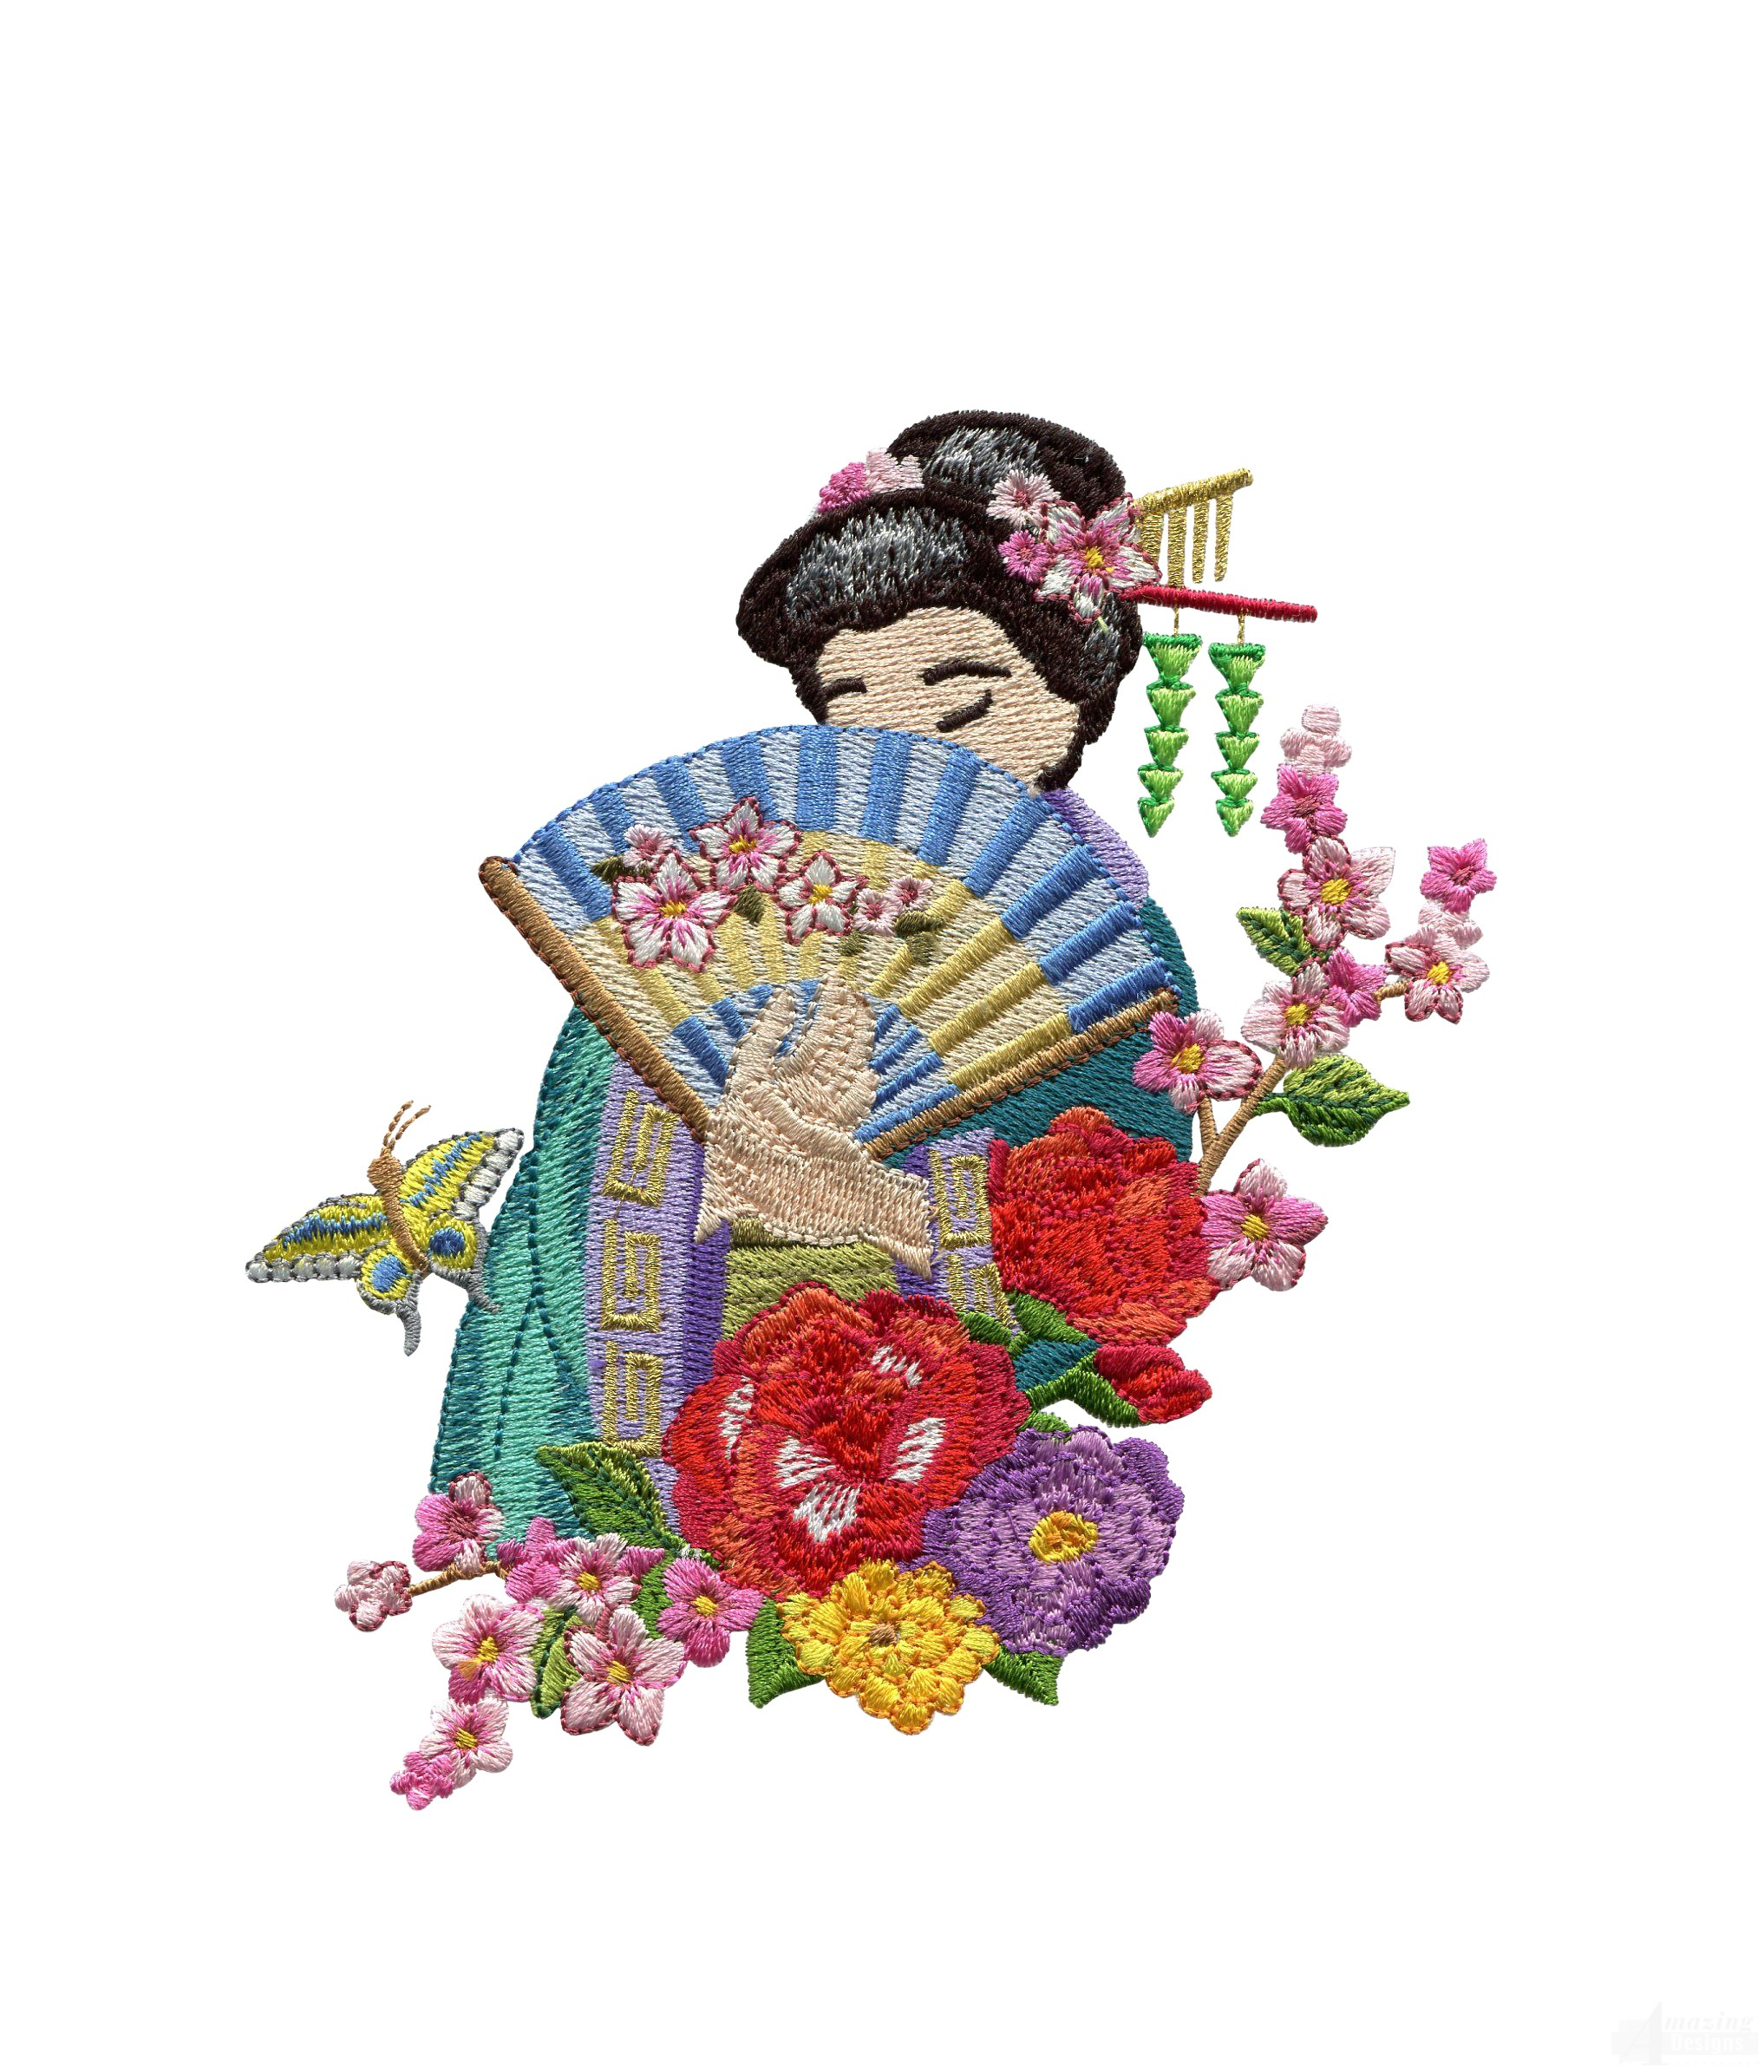 Swngg107 a geishas garden embroidery design for Garden embroidery designs free